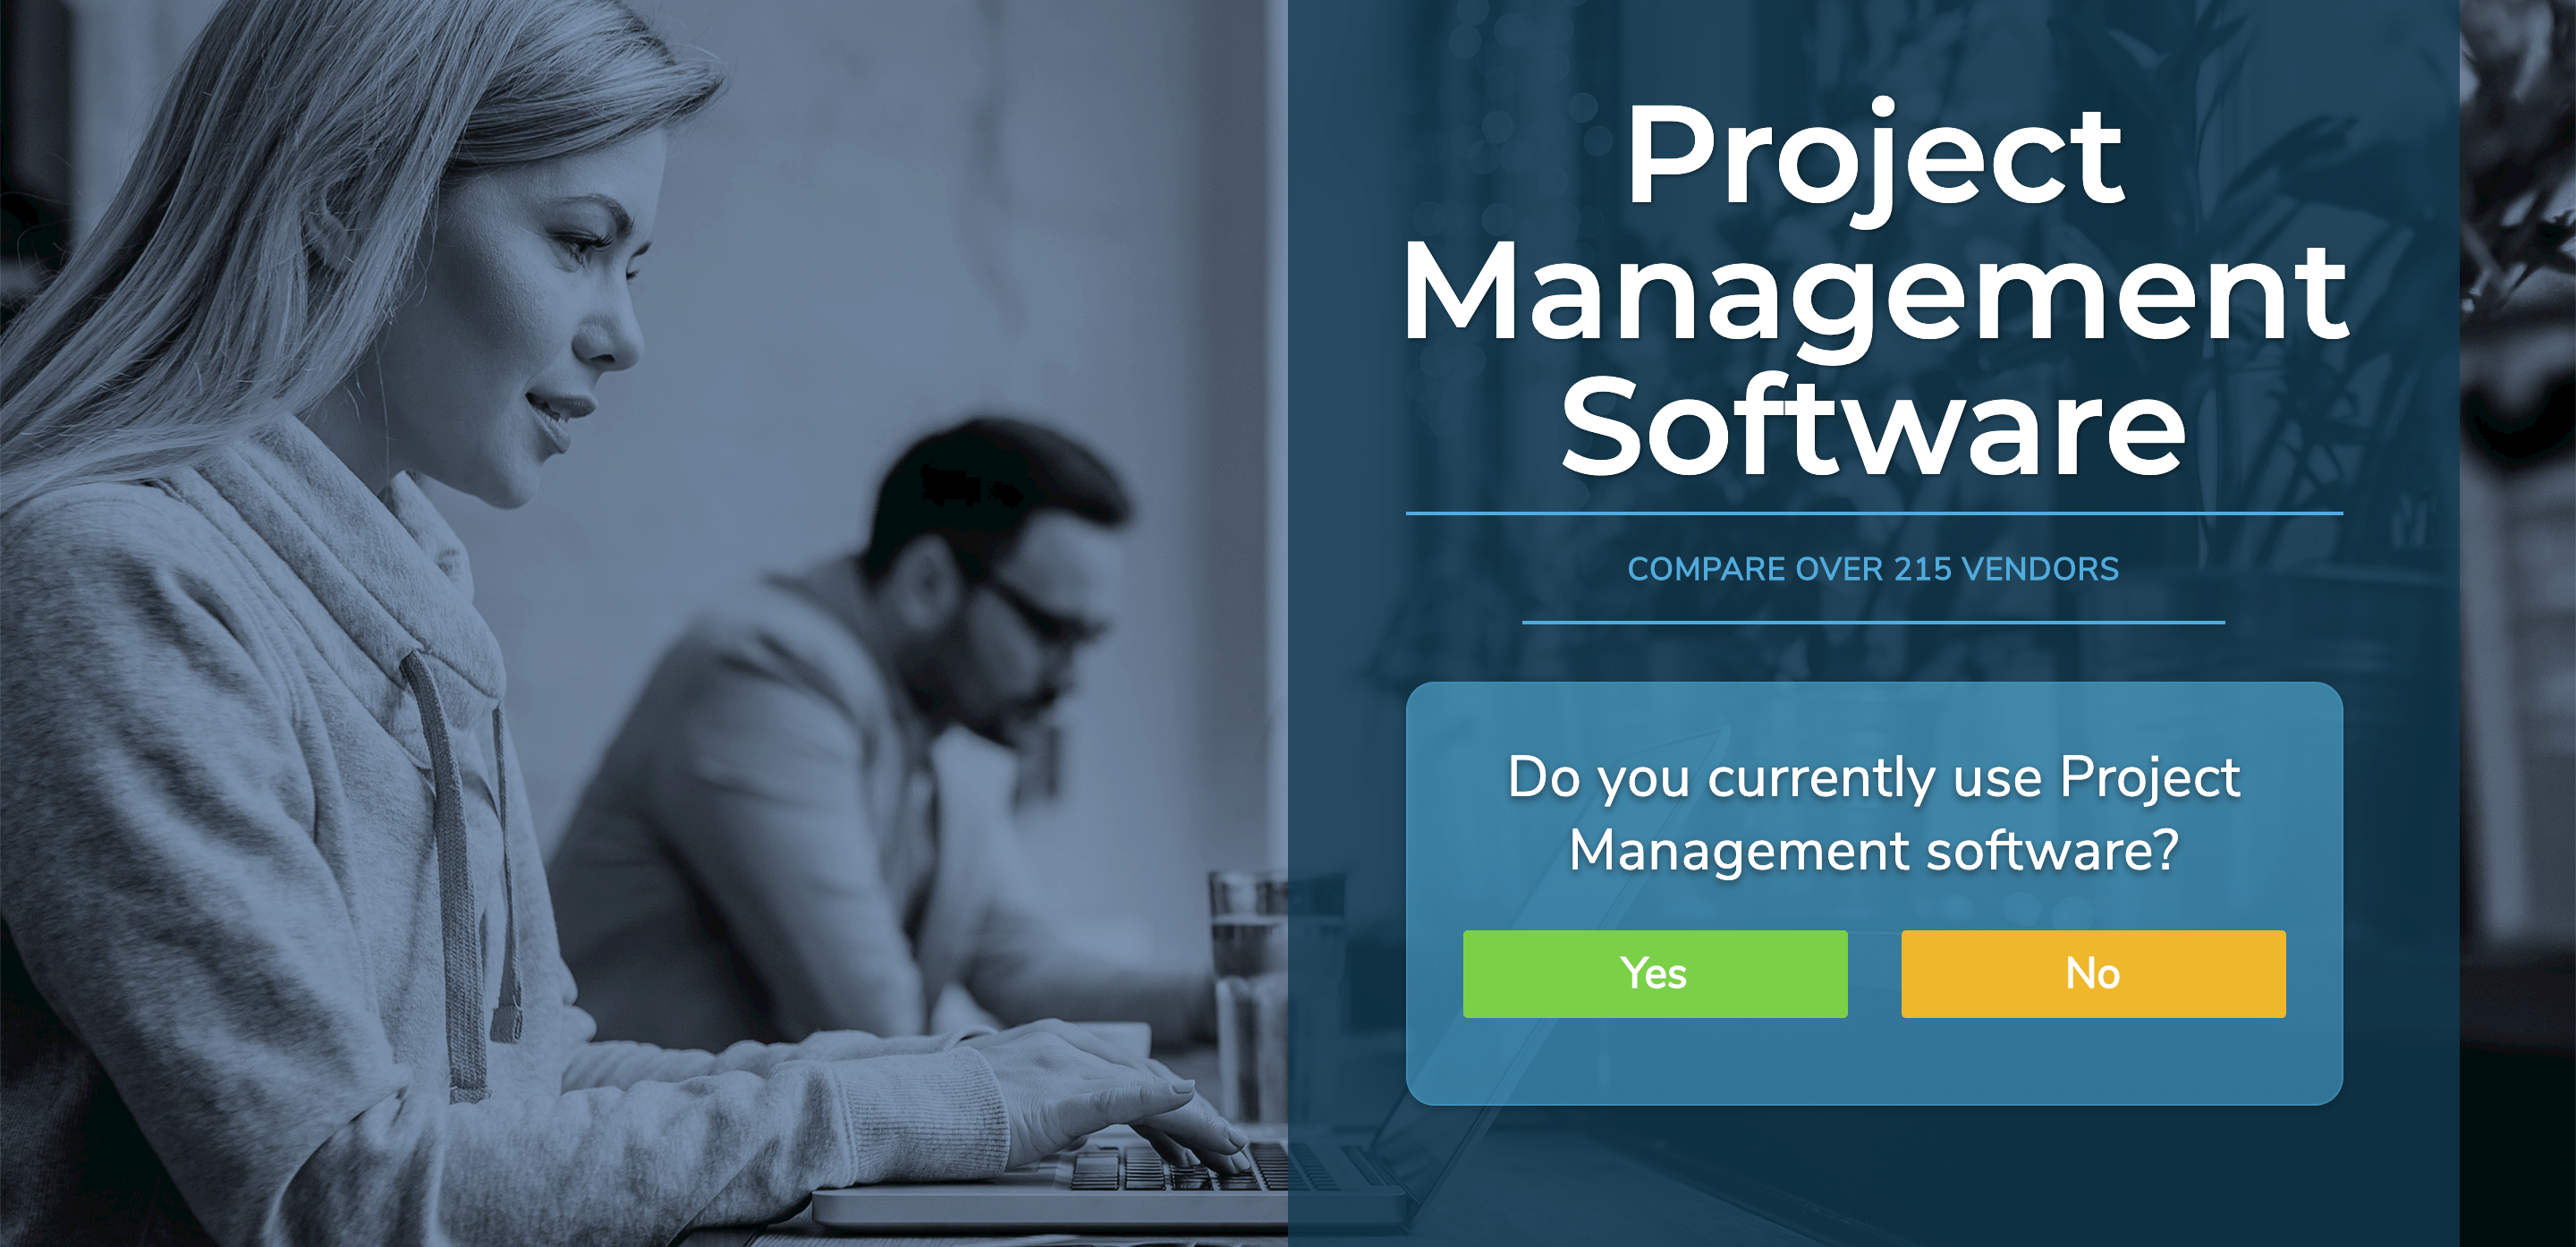 project management software selection tool. Find your perfect software.